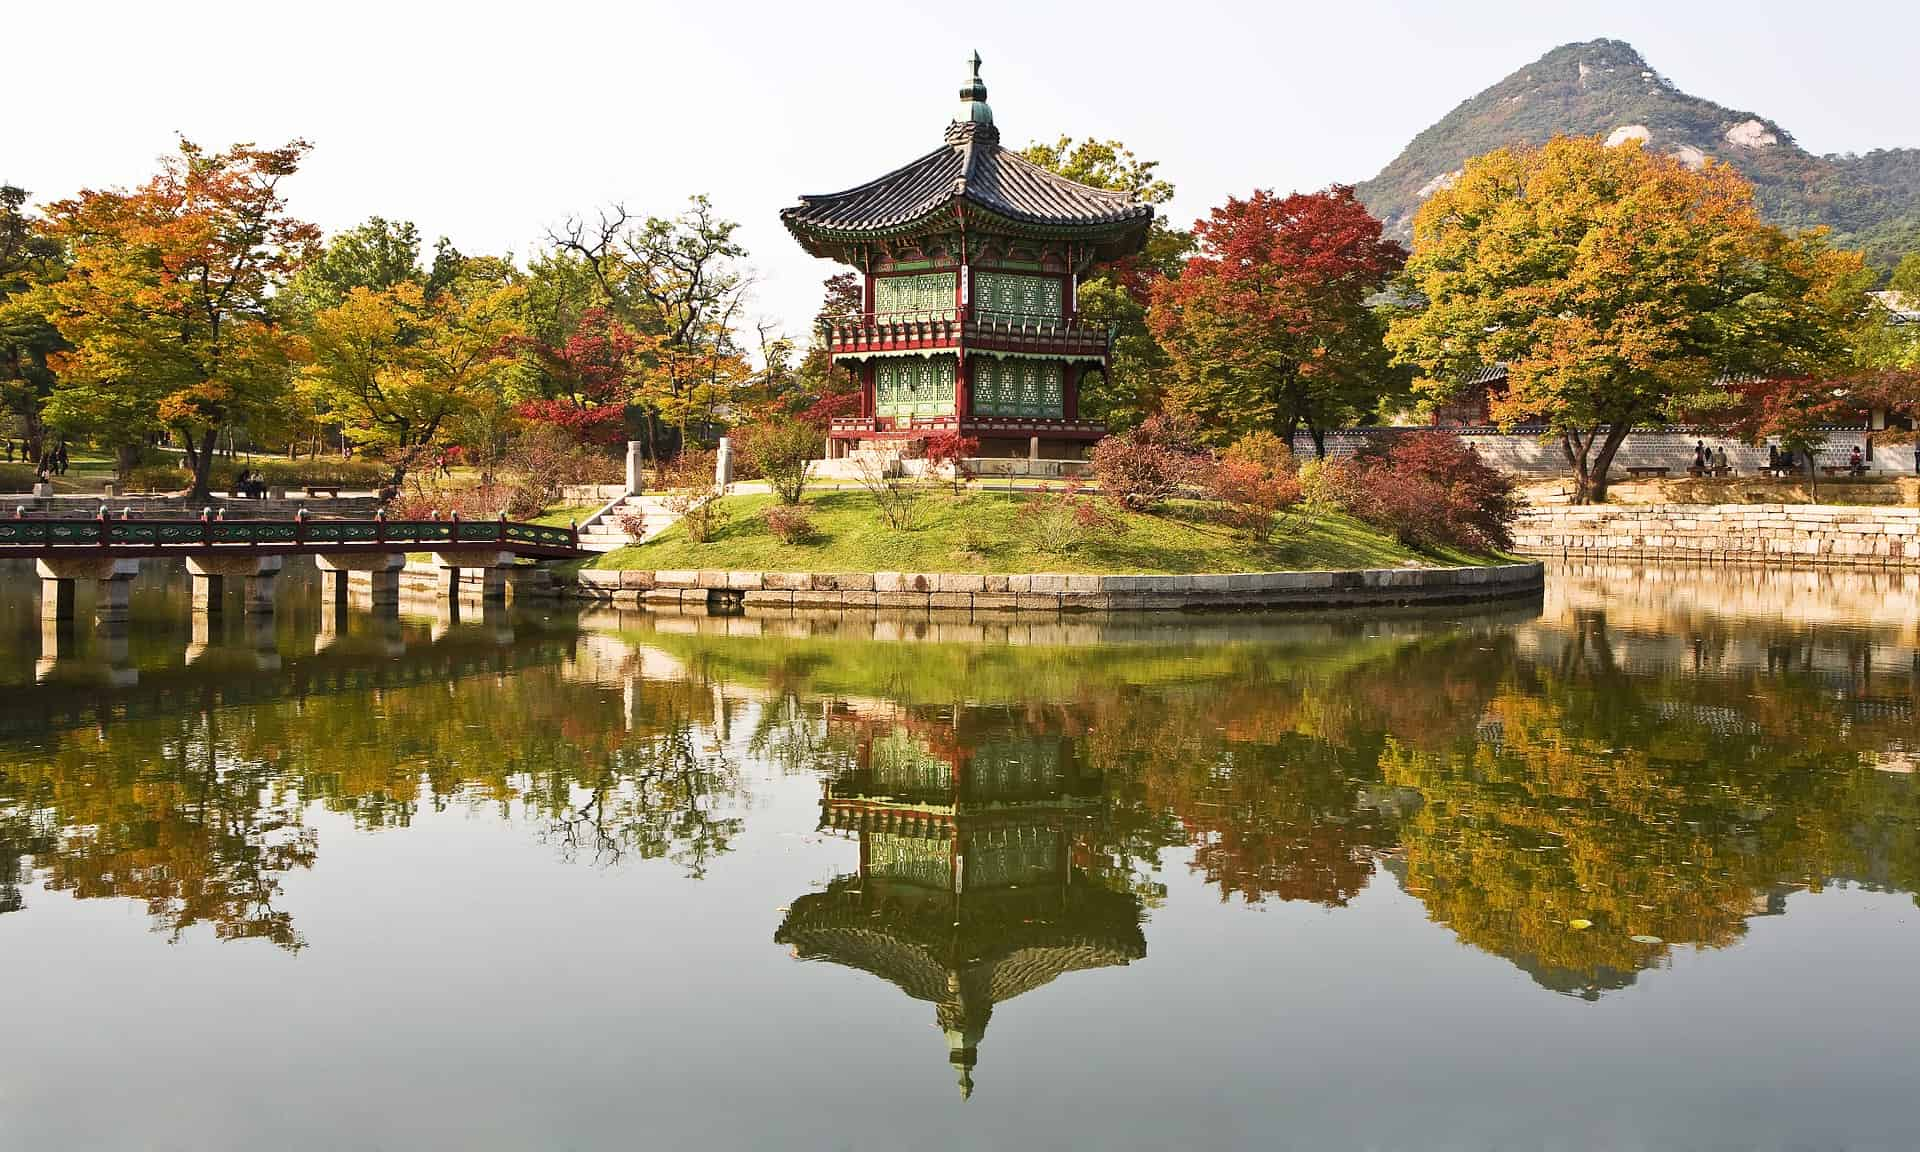 Gorgeous Hyangwonjeong Pavilion surrounded by a pond and beautiful red and yellow leaves during autumn in Korea